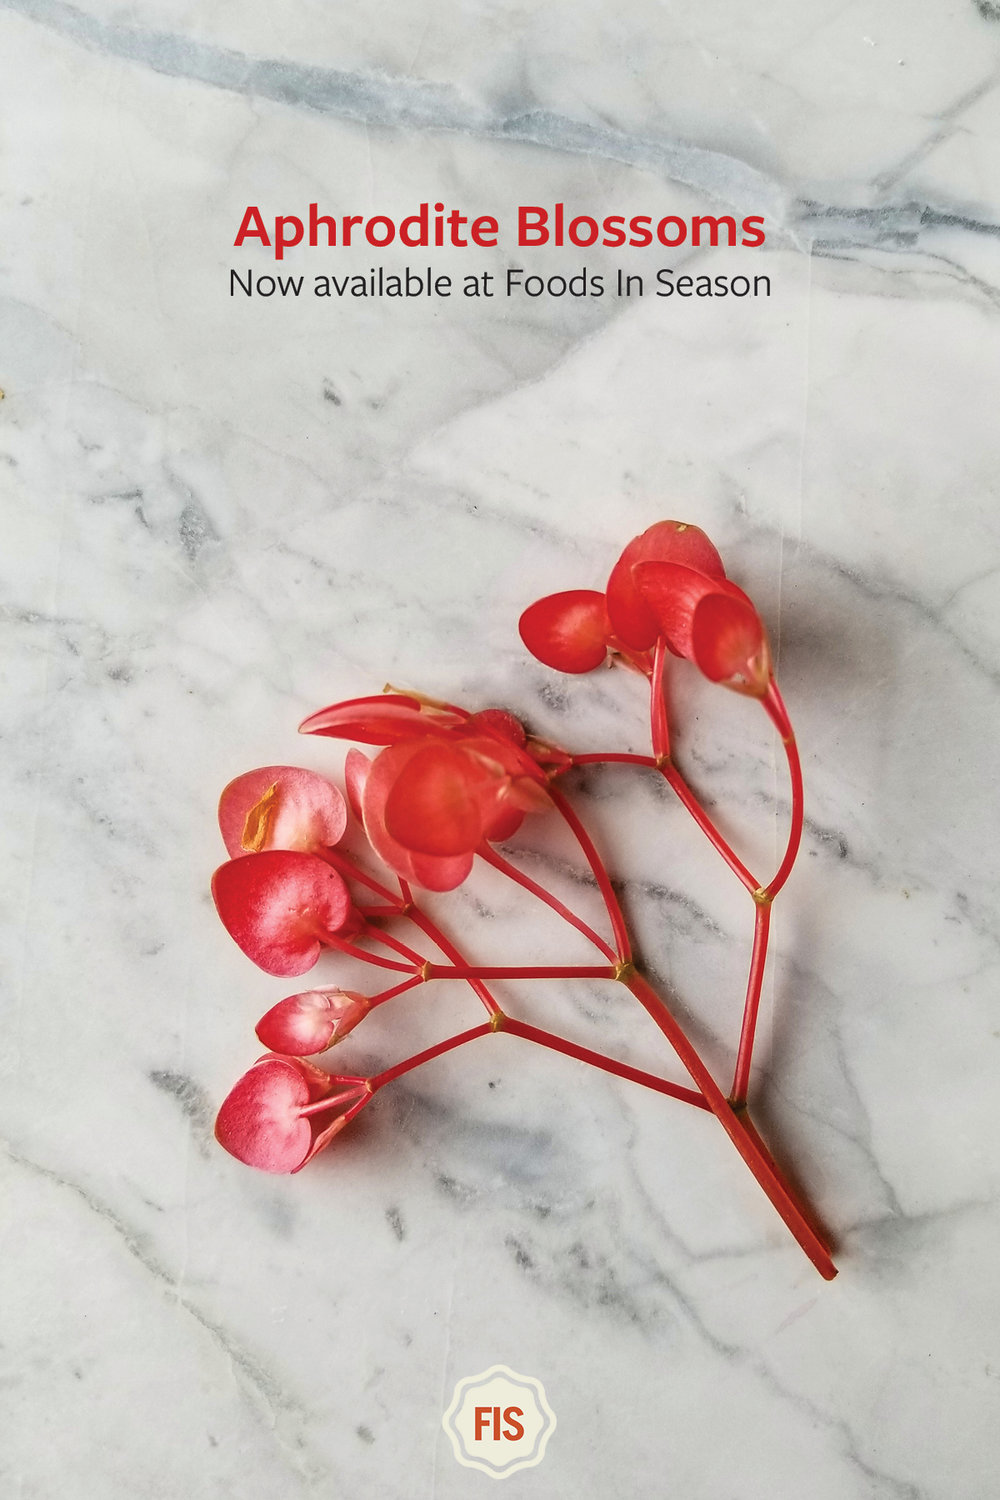 Aphrodite Blossoms only at Foods In Season